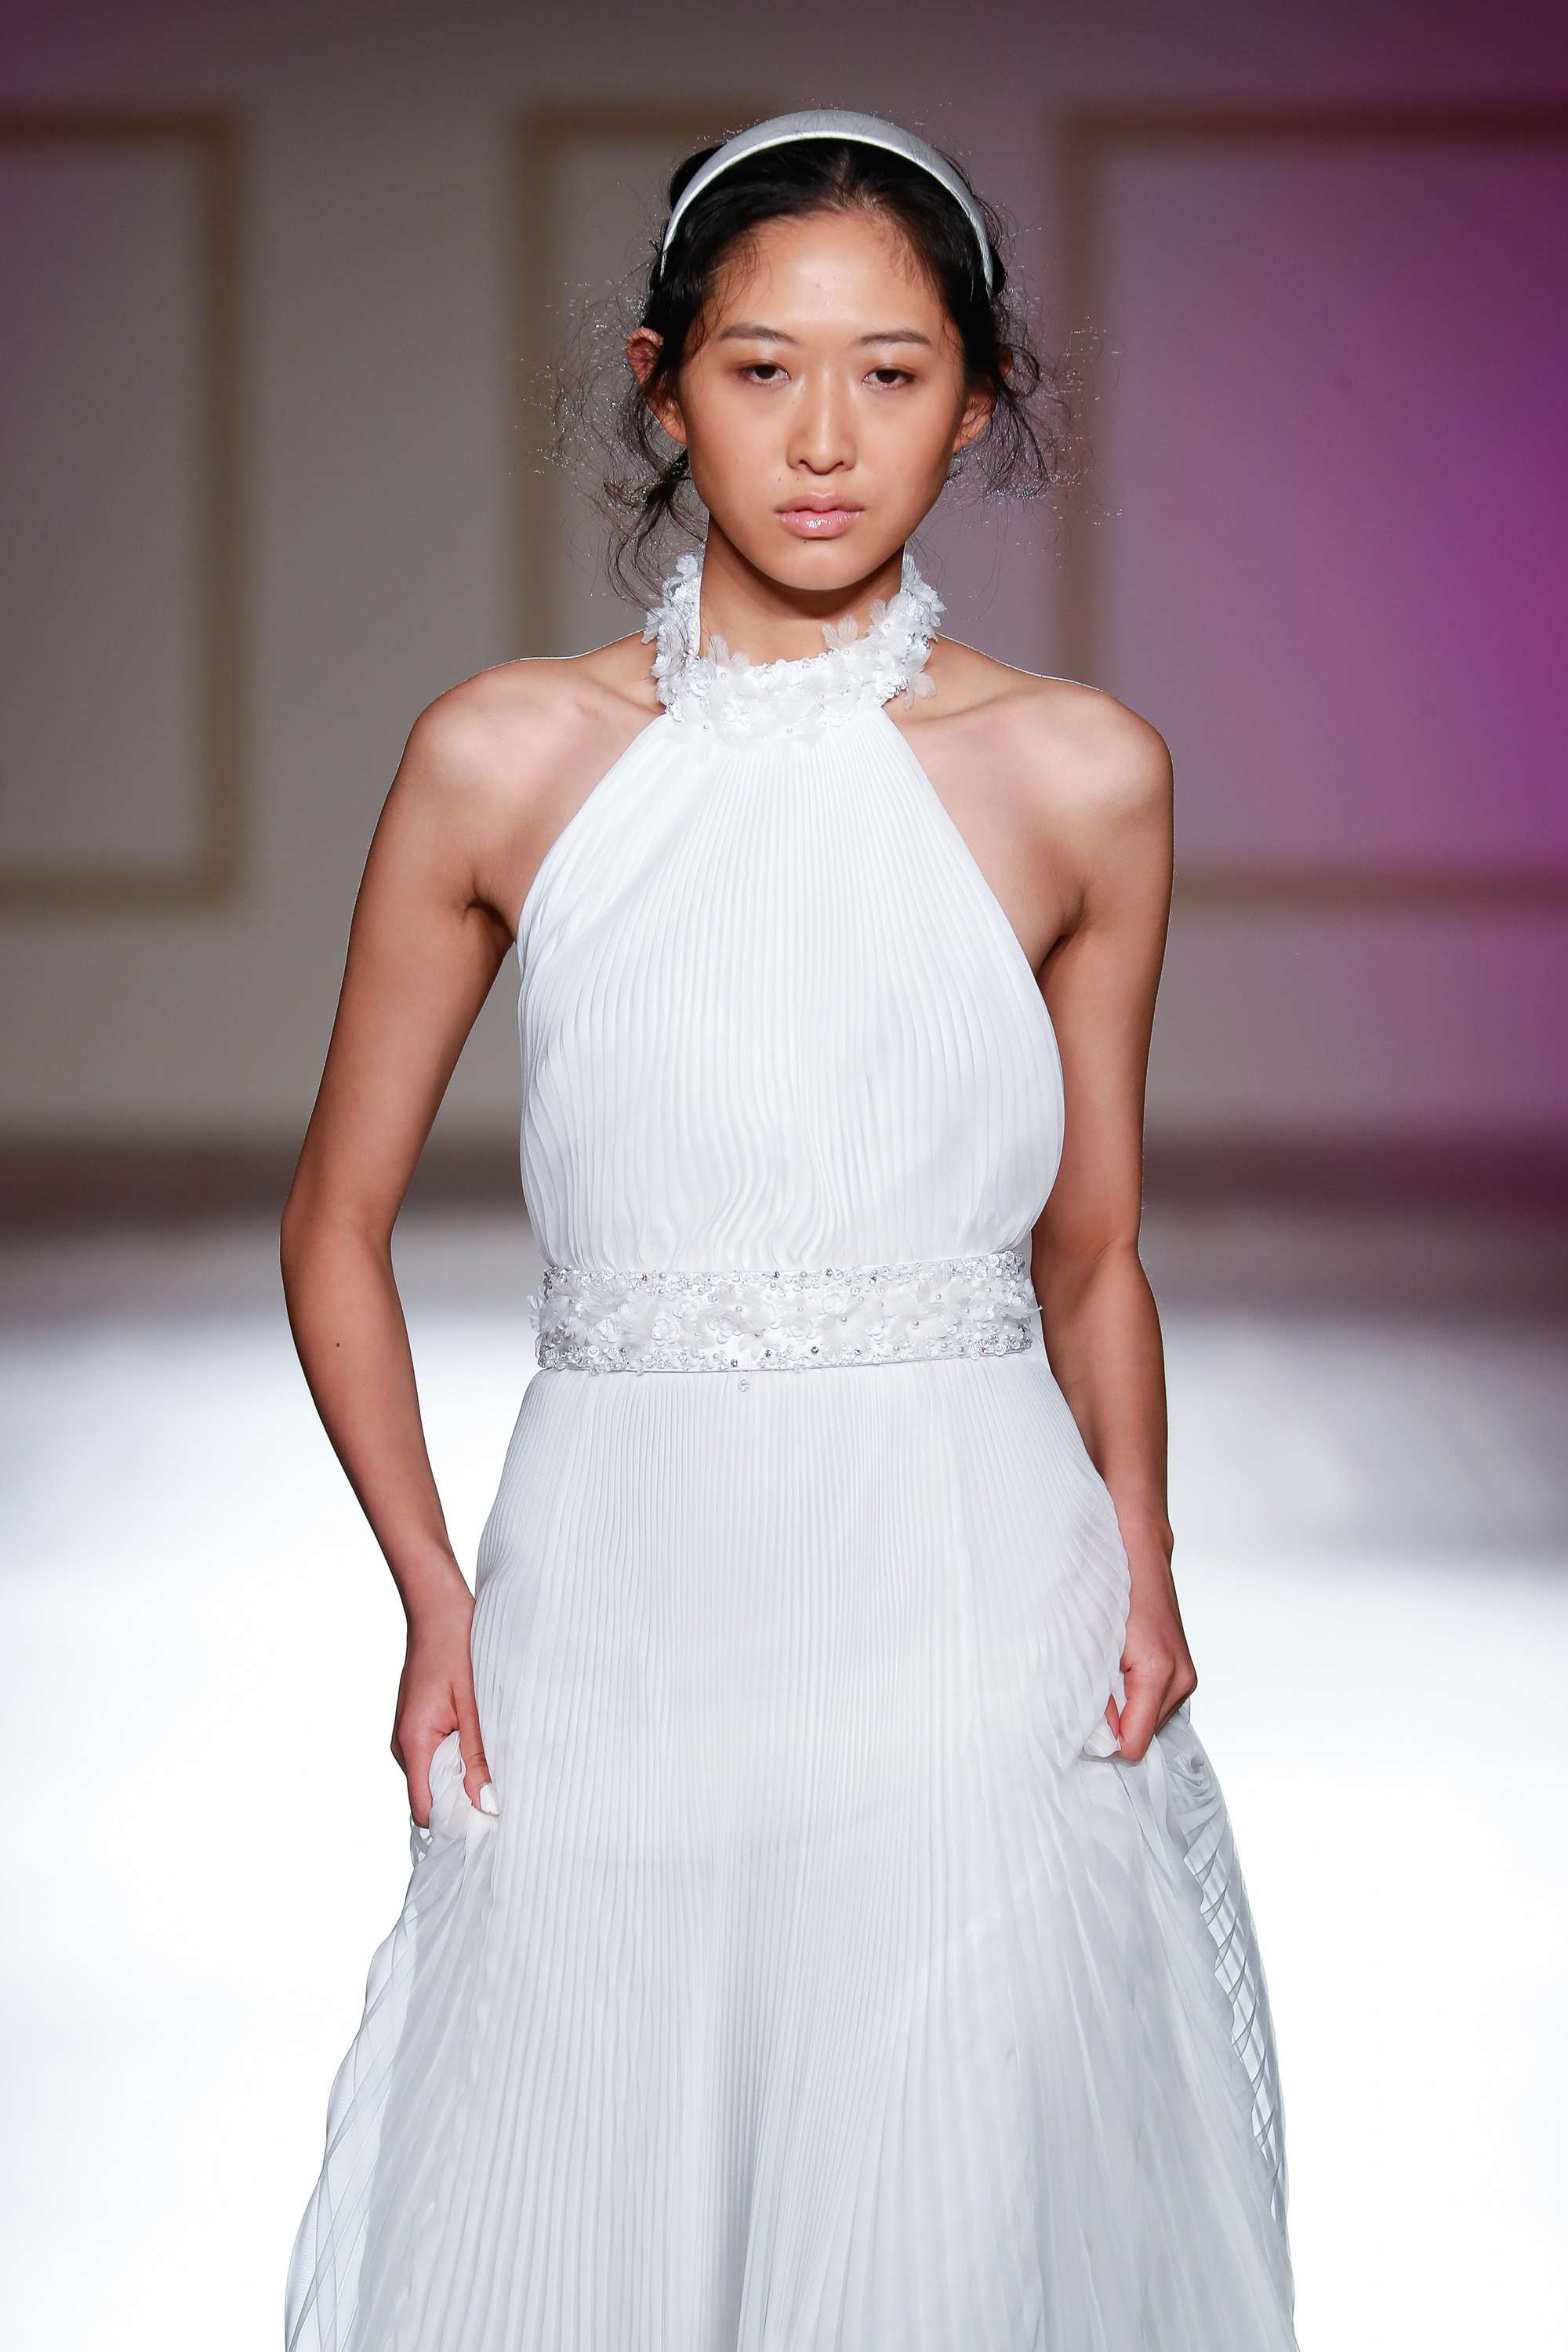 brunette bridal model on the runway with a white headband in her hair